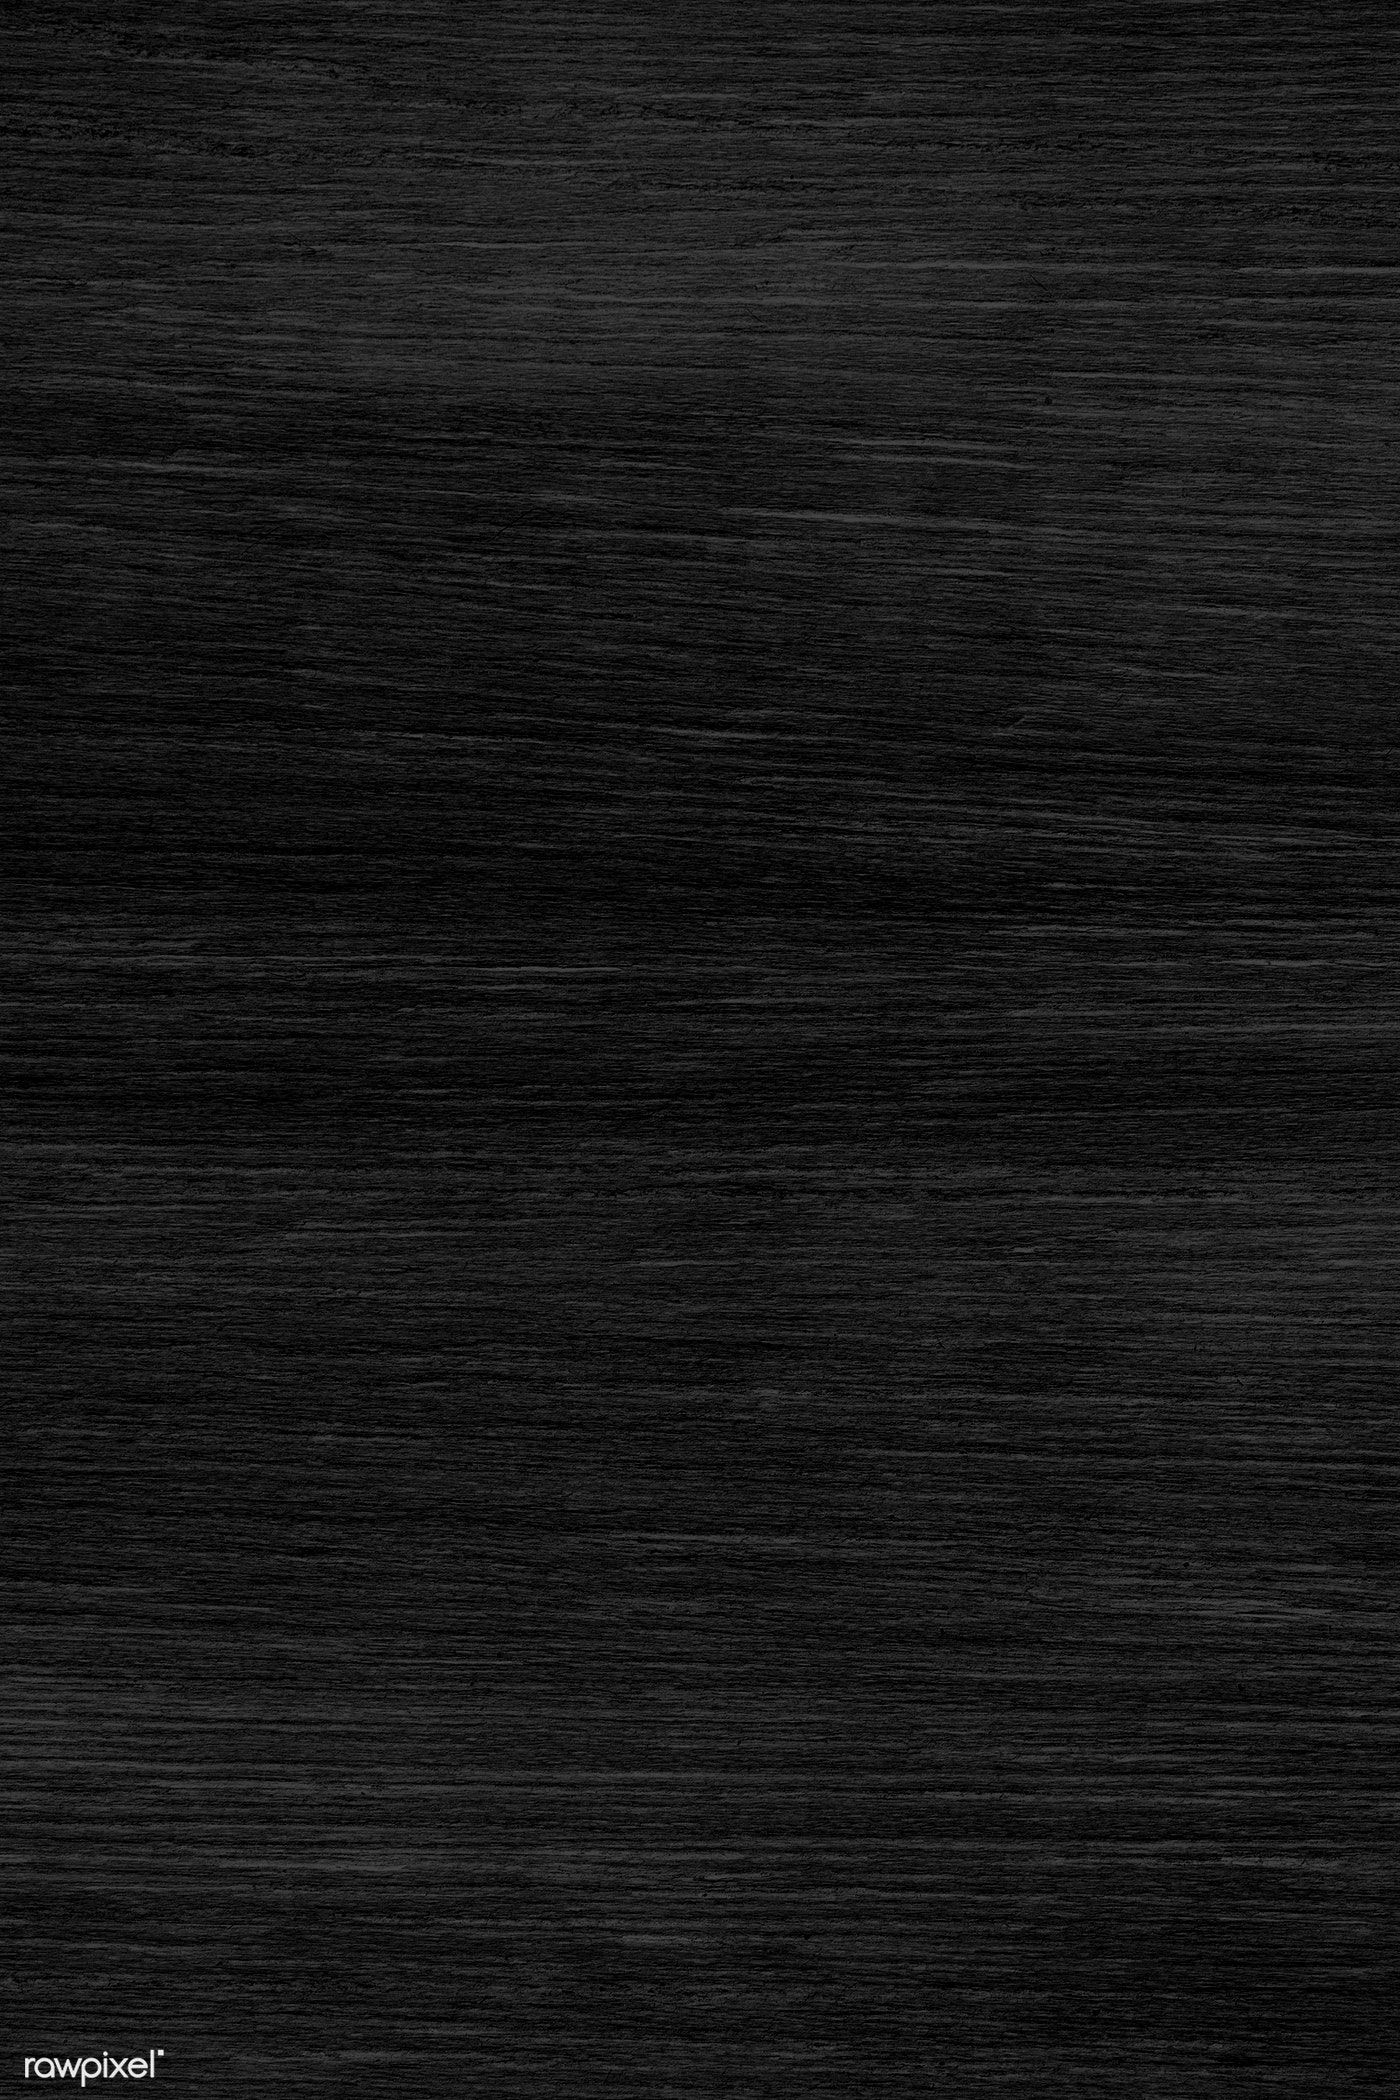 Blank Black Wooden Textured Design Background Free Image By Rawpixel Com Marinemynt Black Wallpaper Texture Wood Texture Background White Wood Texture